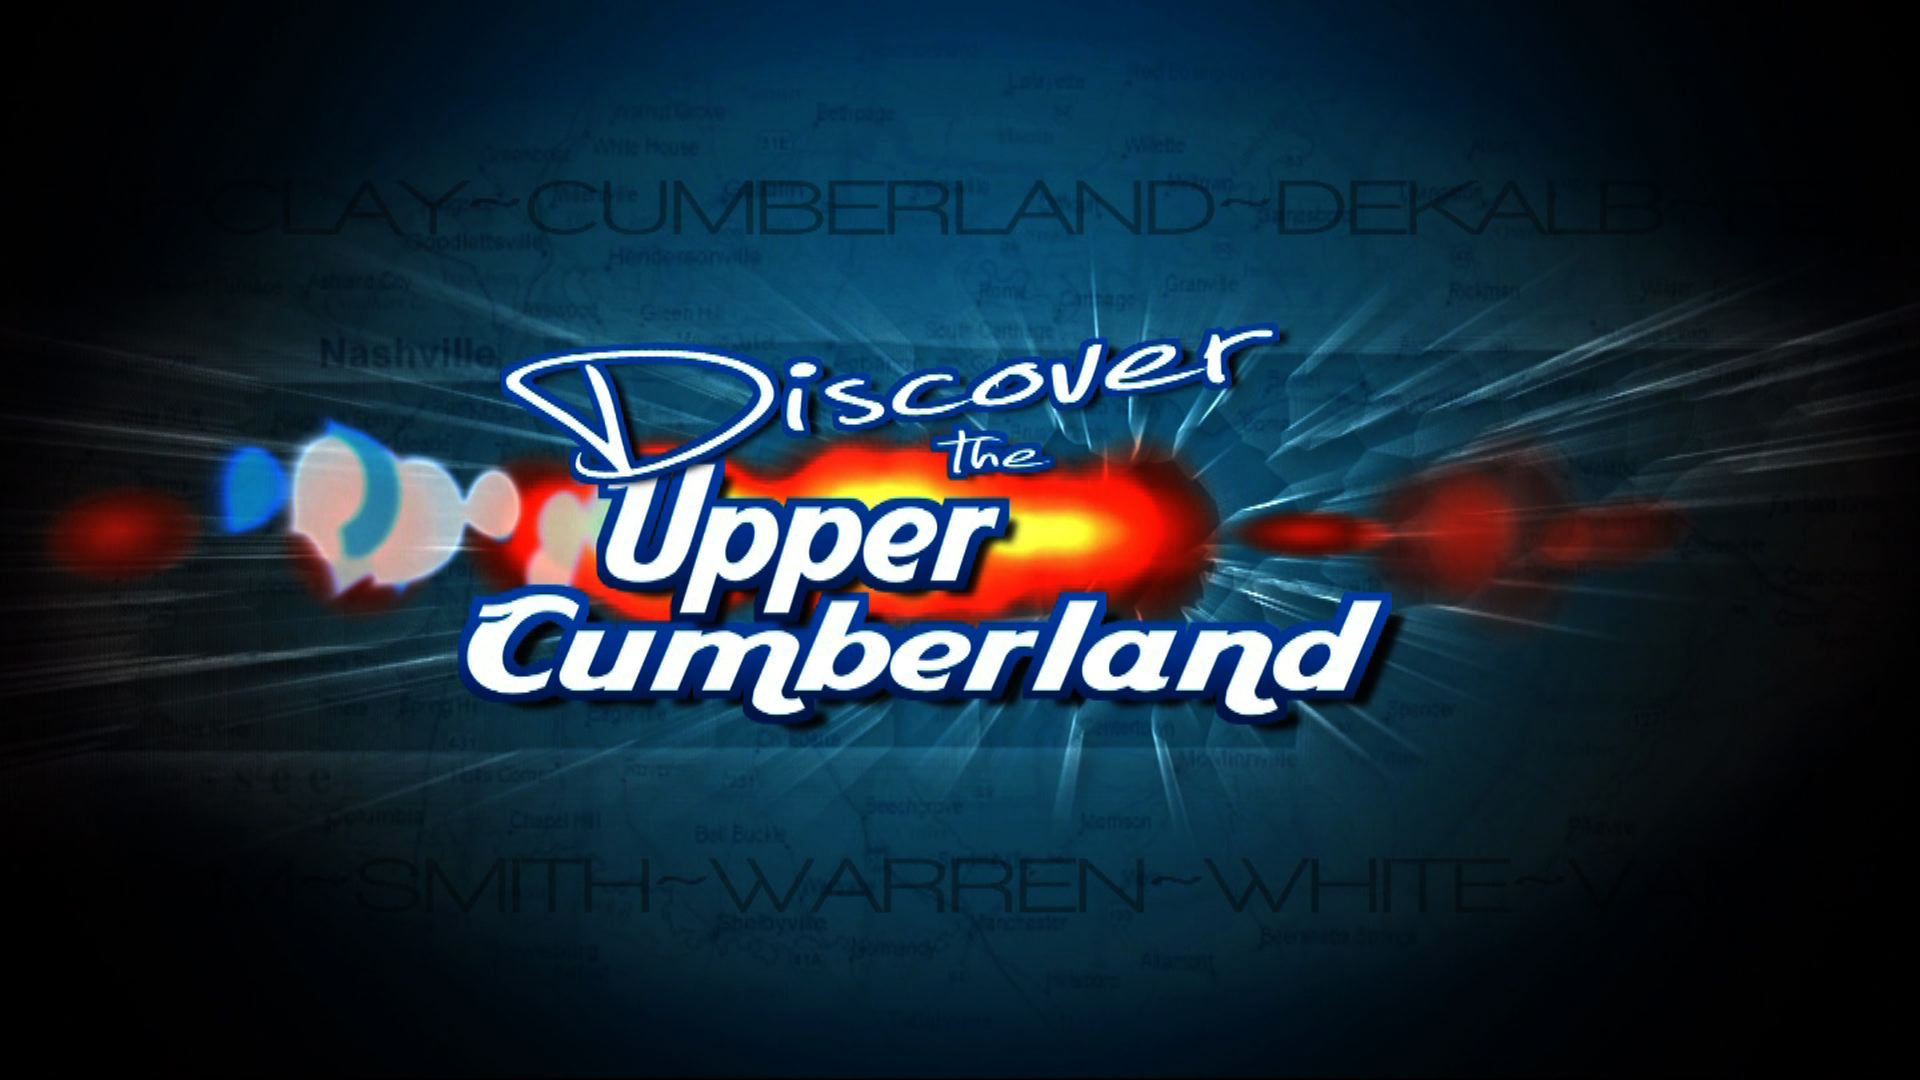 Discover the Upper Cumberland: The Documentary